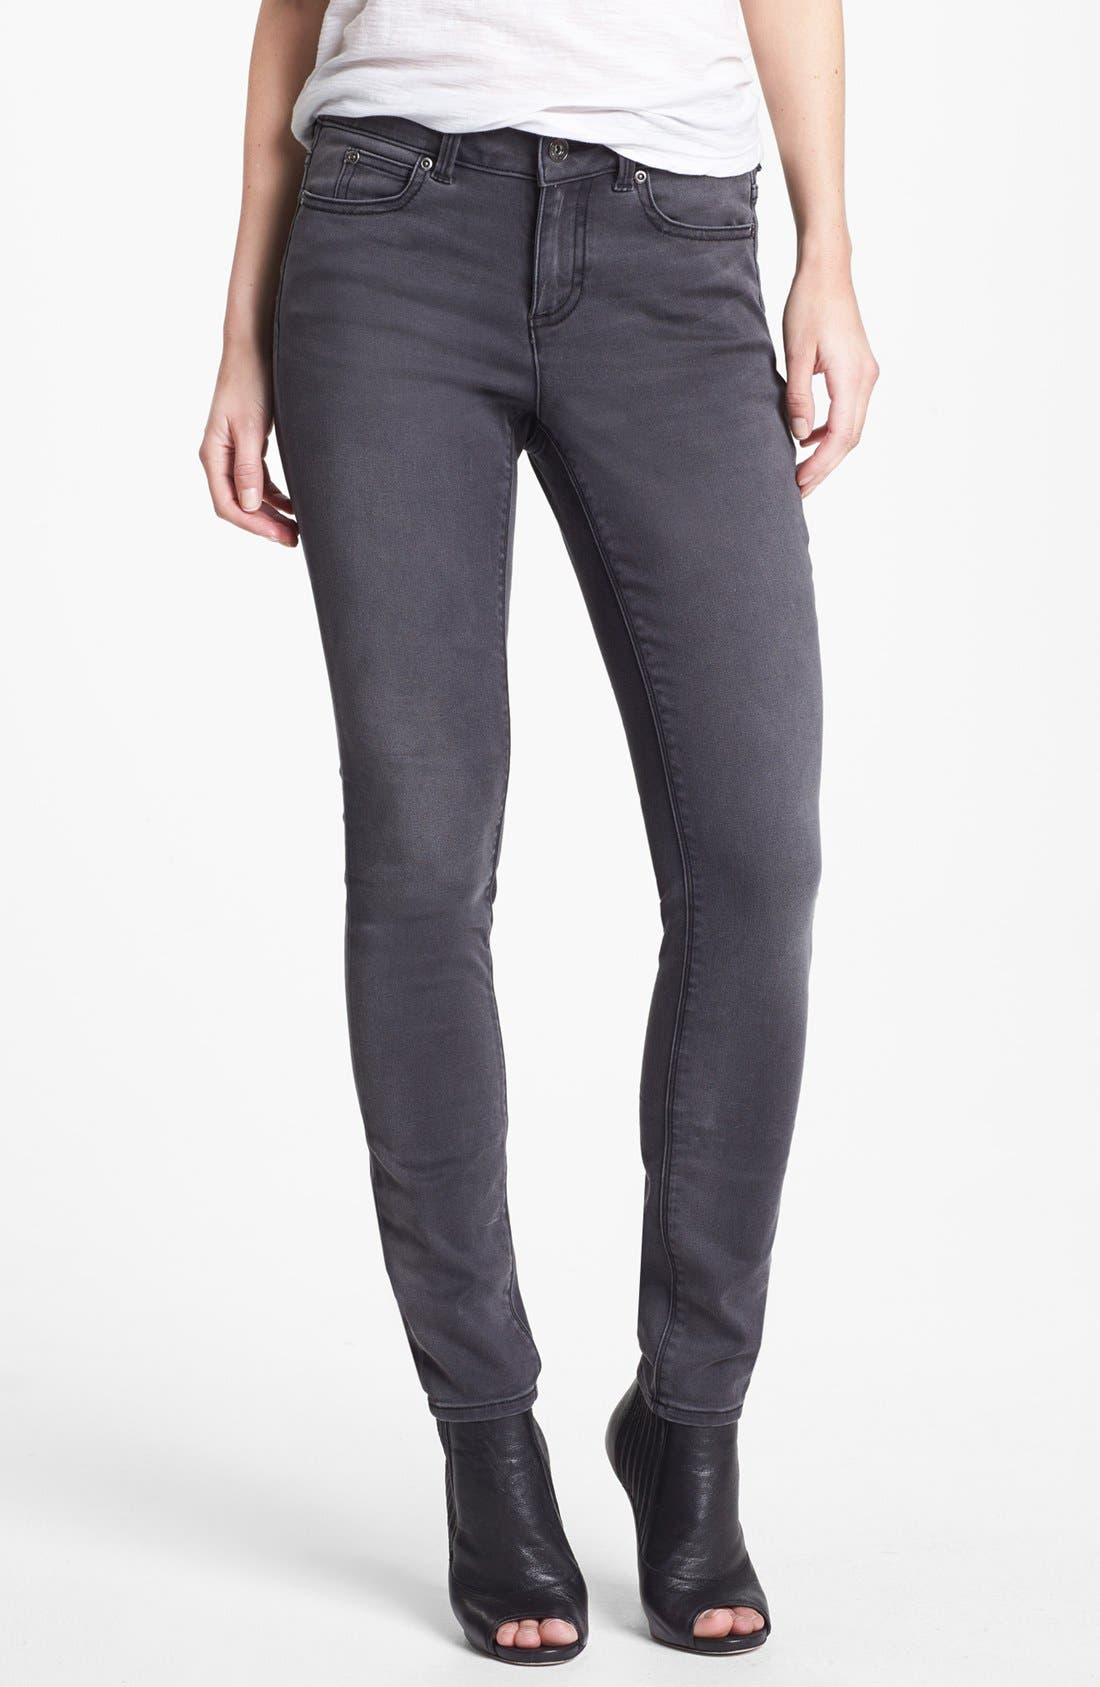 Main Image - Two by Vince Camuto 'Stone' Stretch Skinny Jeans (Dark Stone)